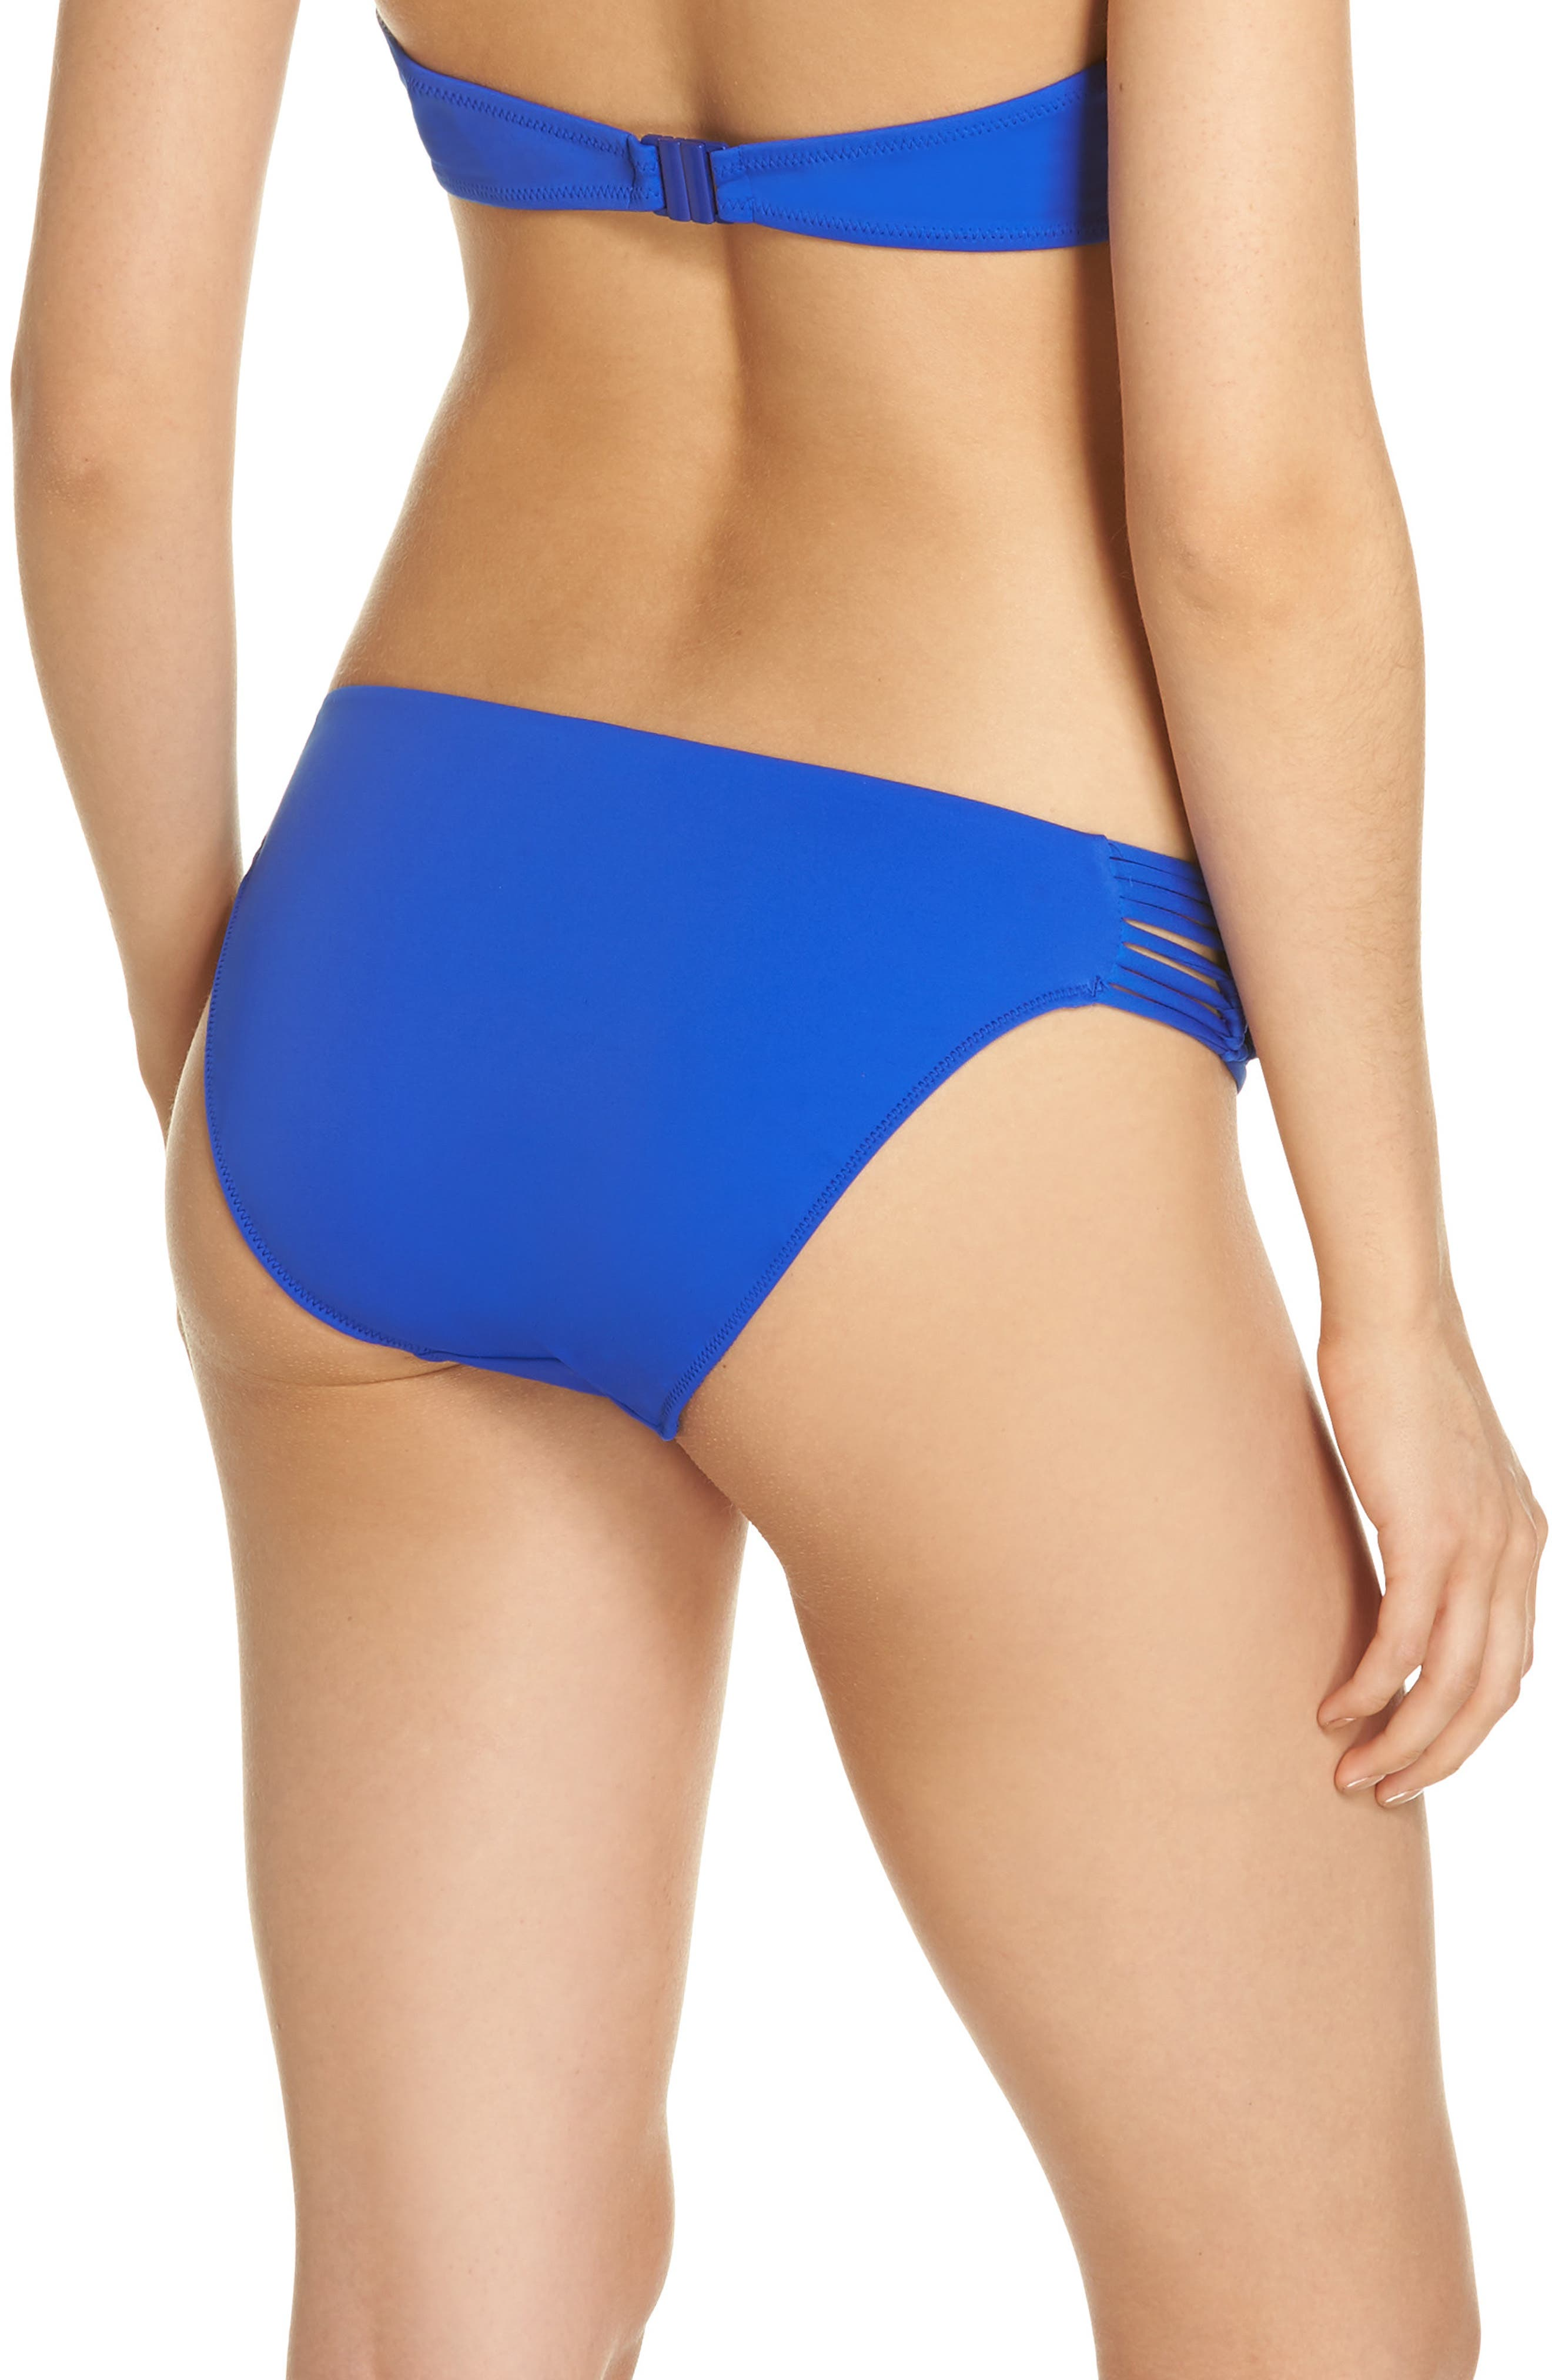 Macramé Bikini Bottoms,                             Alternate thumbnail 2, color,                             Cobalt